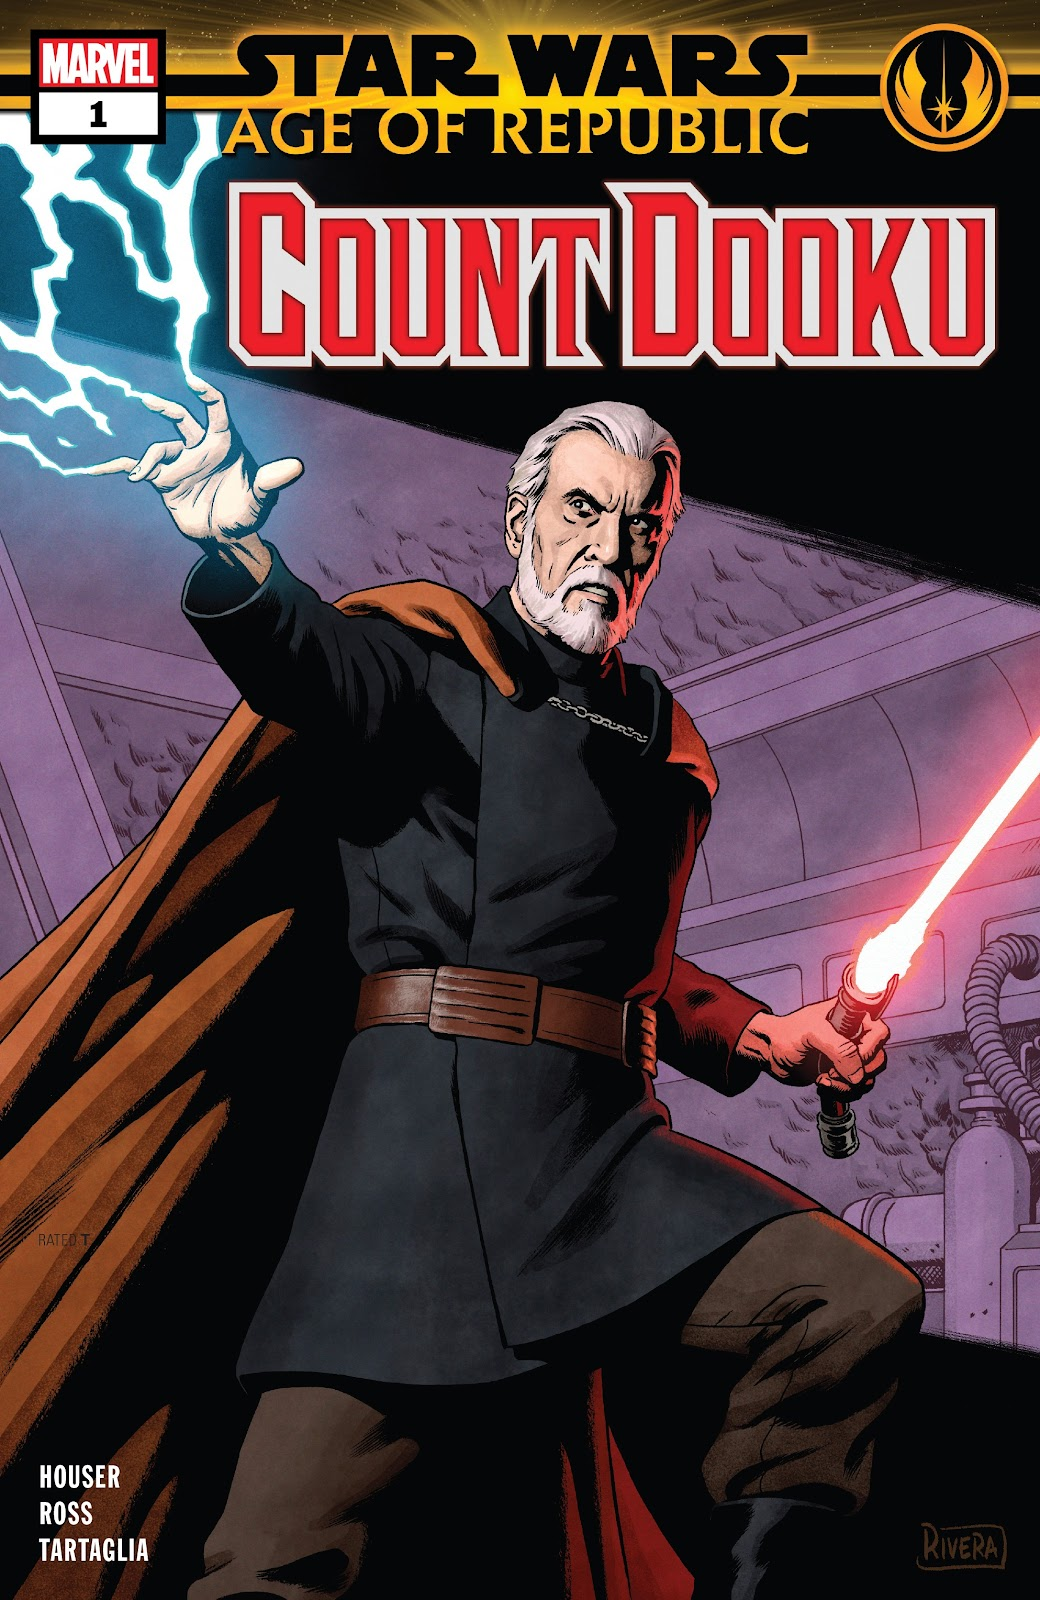 Read online Star Wars: Age of Republic - Count Dooku comic -  Issue # Full - 1